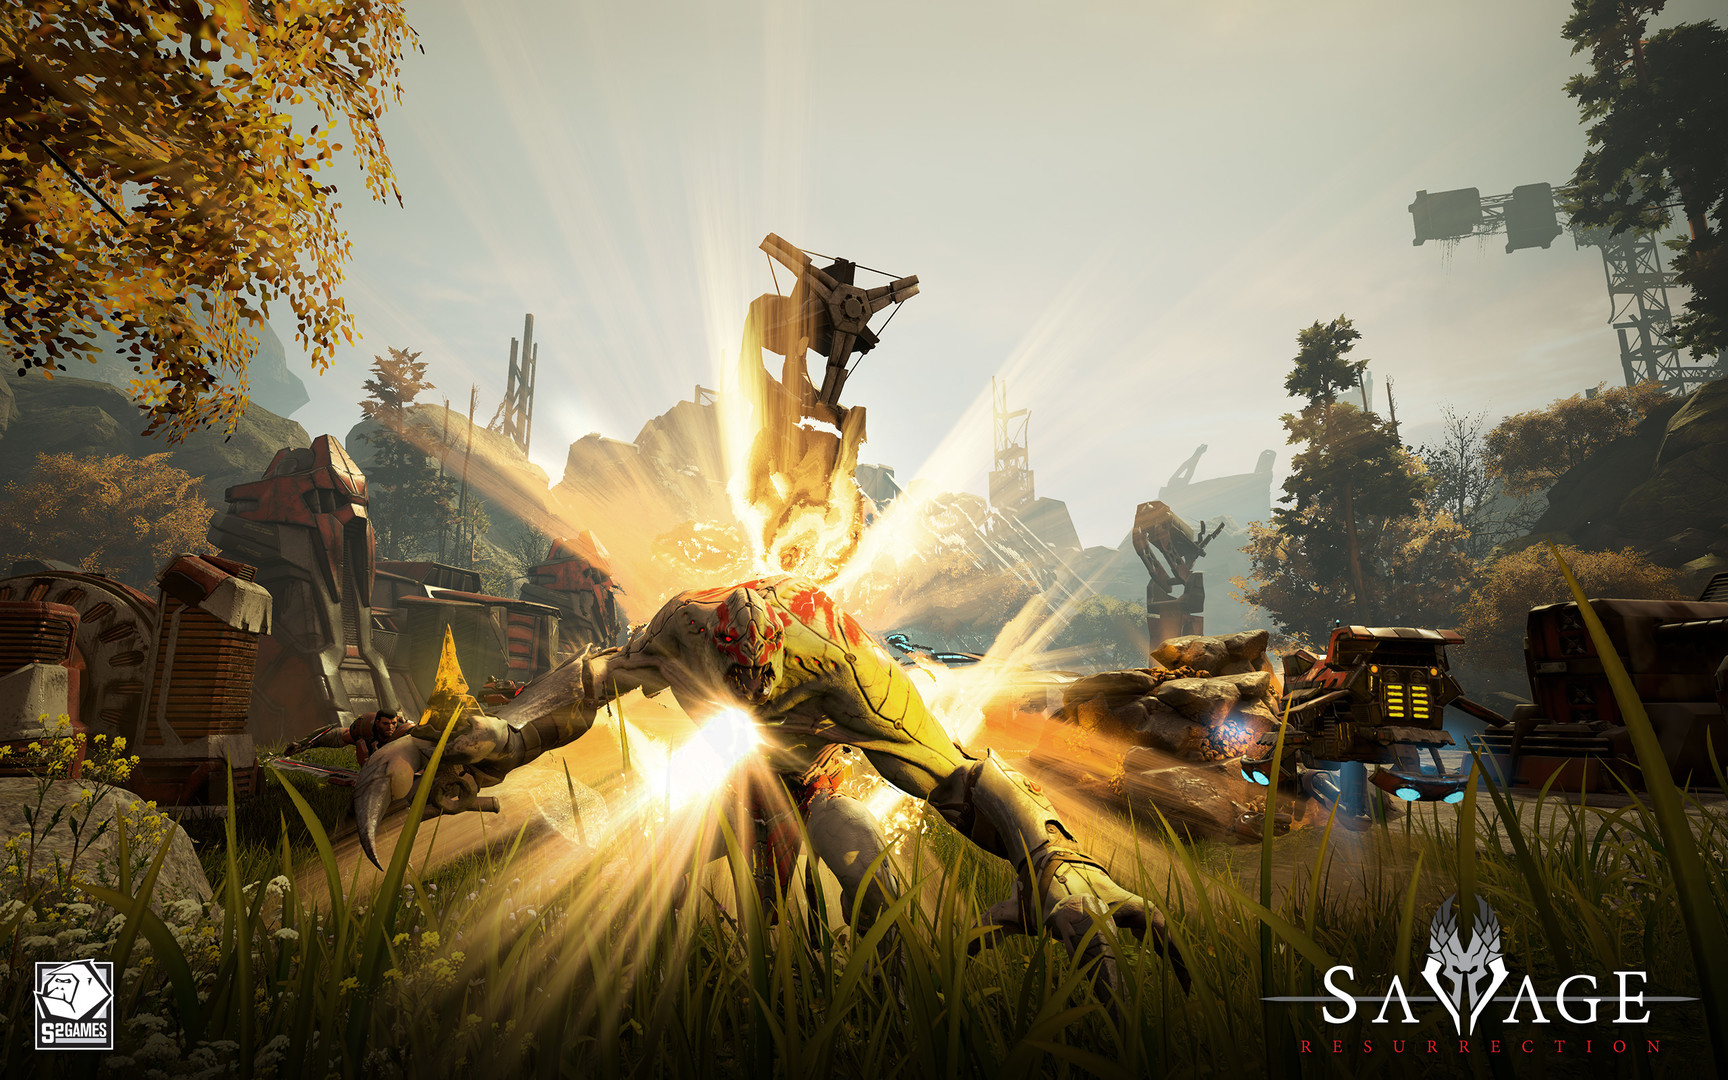 Savage Resurrection Download For Free